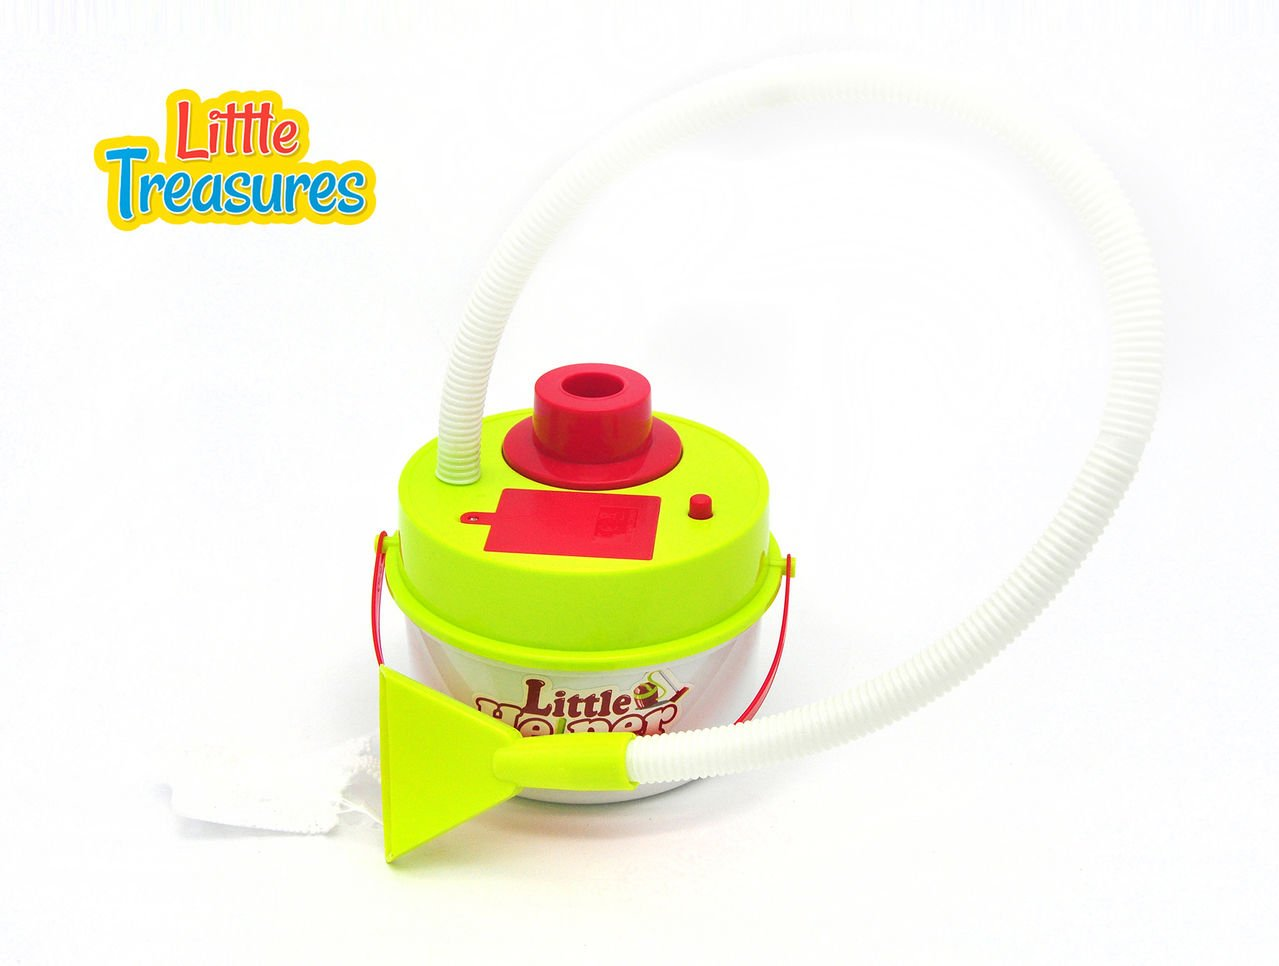 Little helper quality cleaning play set from Little Treasures – Complete with functional vacuum toy–play set for children fun pretend helping playtime